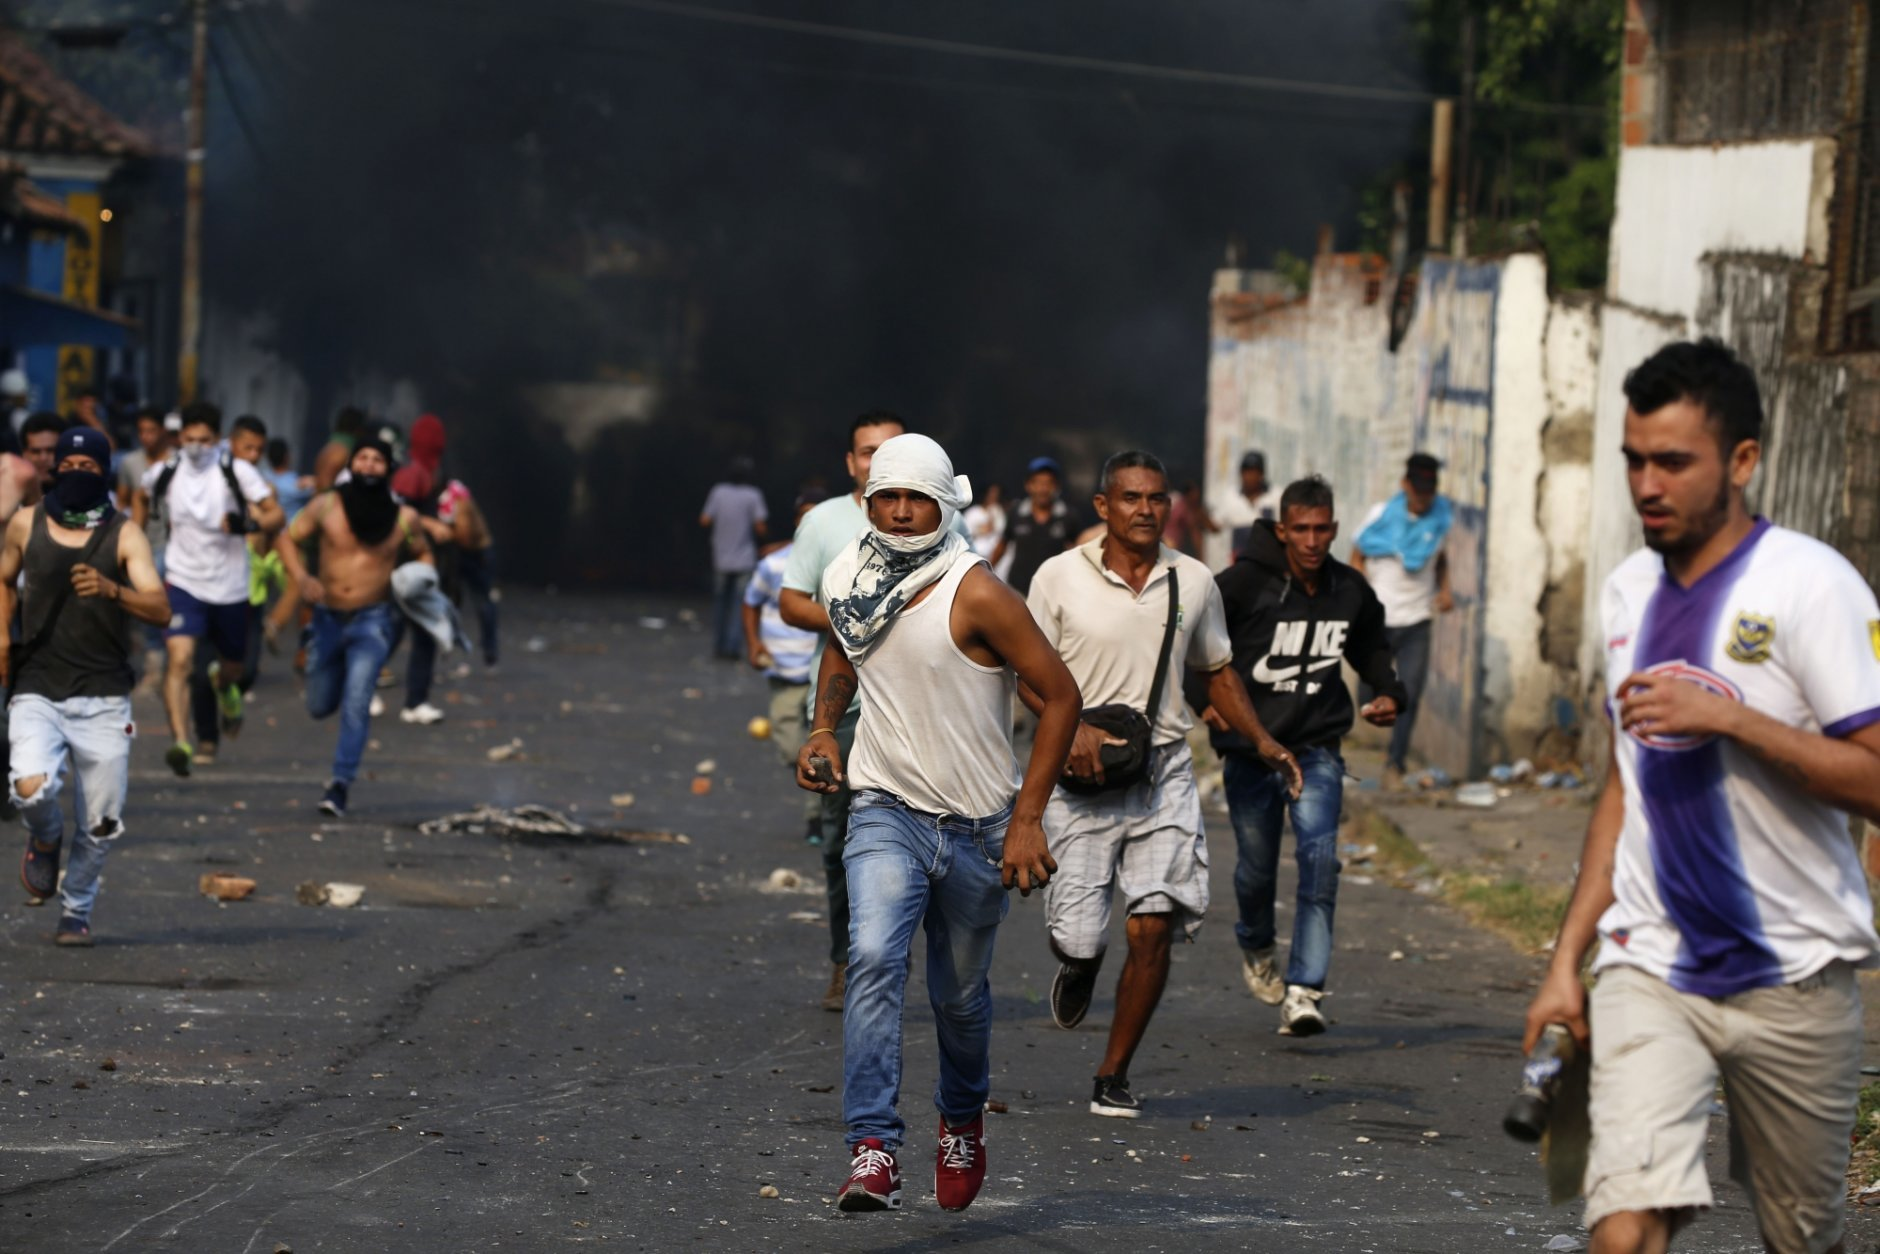 Demonstrators run during clashes with the Bolivarian National Guard in Urena, Venezuela, near the border with Colombia, Saturday, Feb. 23, 2019. Venezuela's National Guard fired tear gas on residents clearing a barricaded border bridge between Venezuela and Colombia on Saturday, heightening tensions over blocked humanitarian aid that opposition leader Juan Guaido has vowed to bring into the country over objections from President Nicolas Maduro. (AP Photo/Fernando Llano)